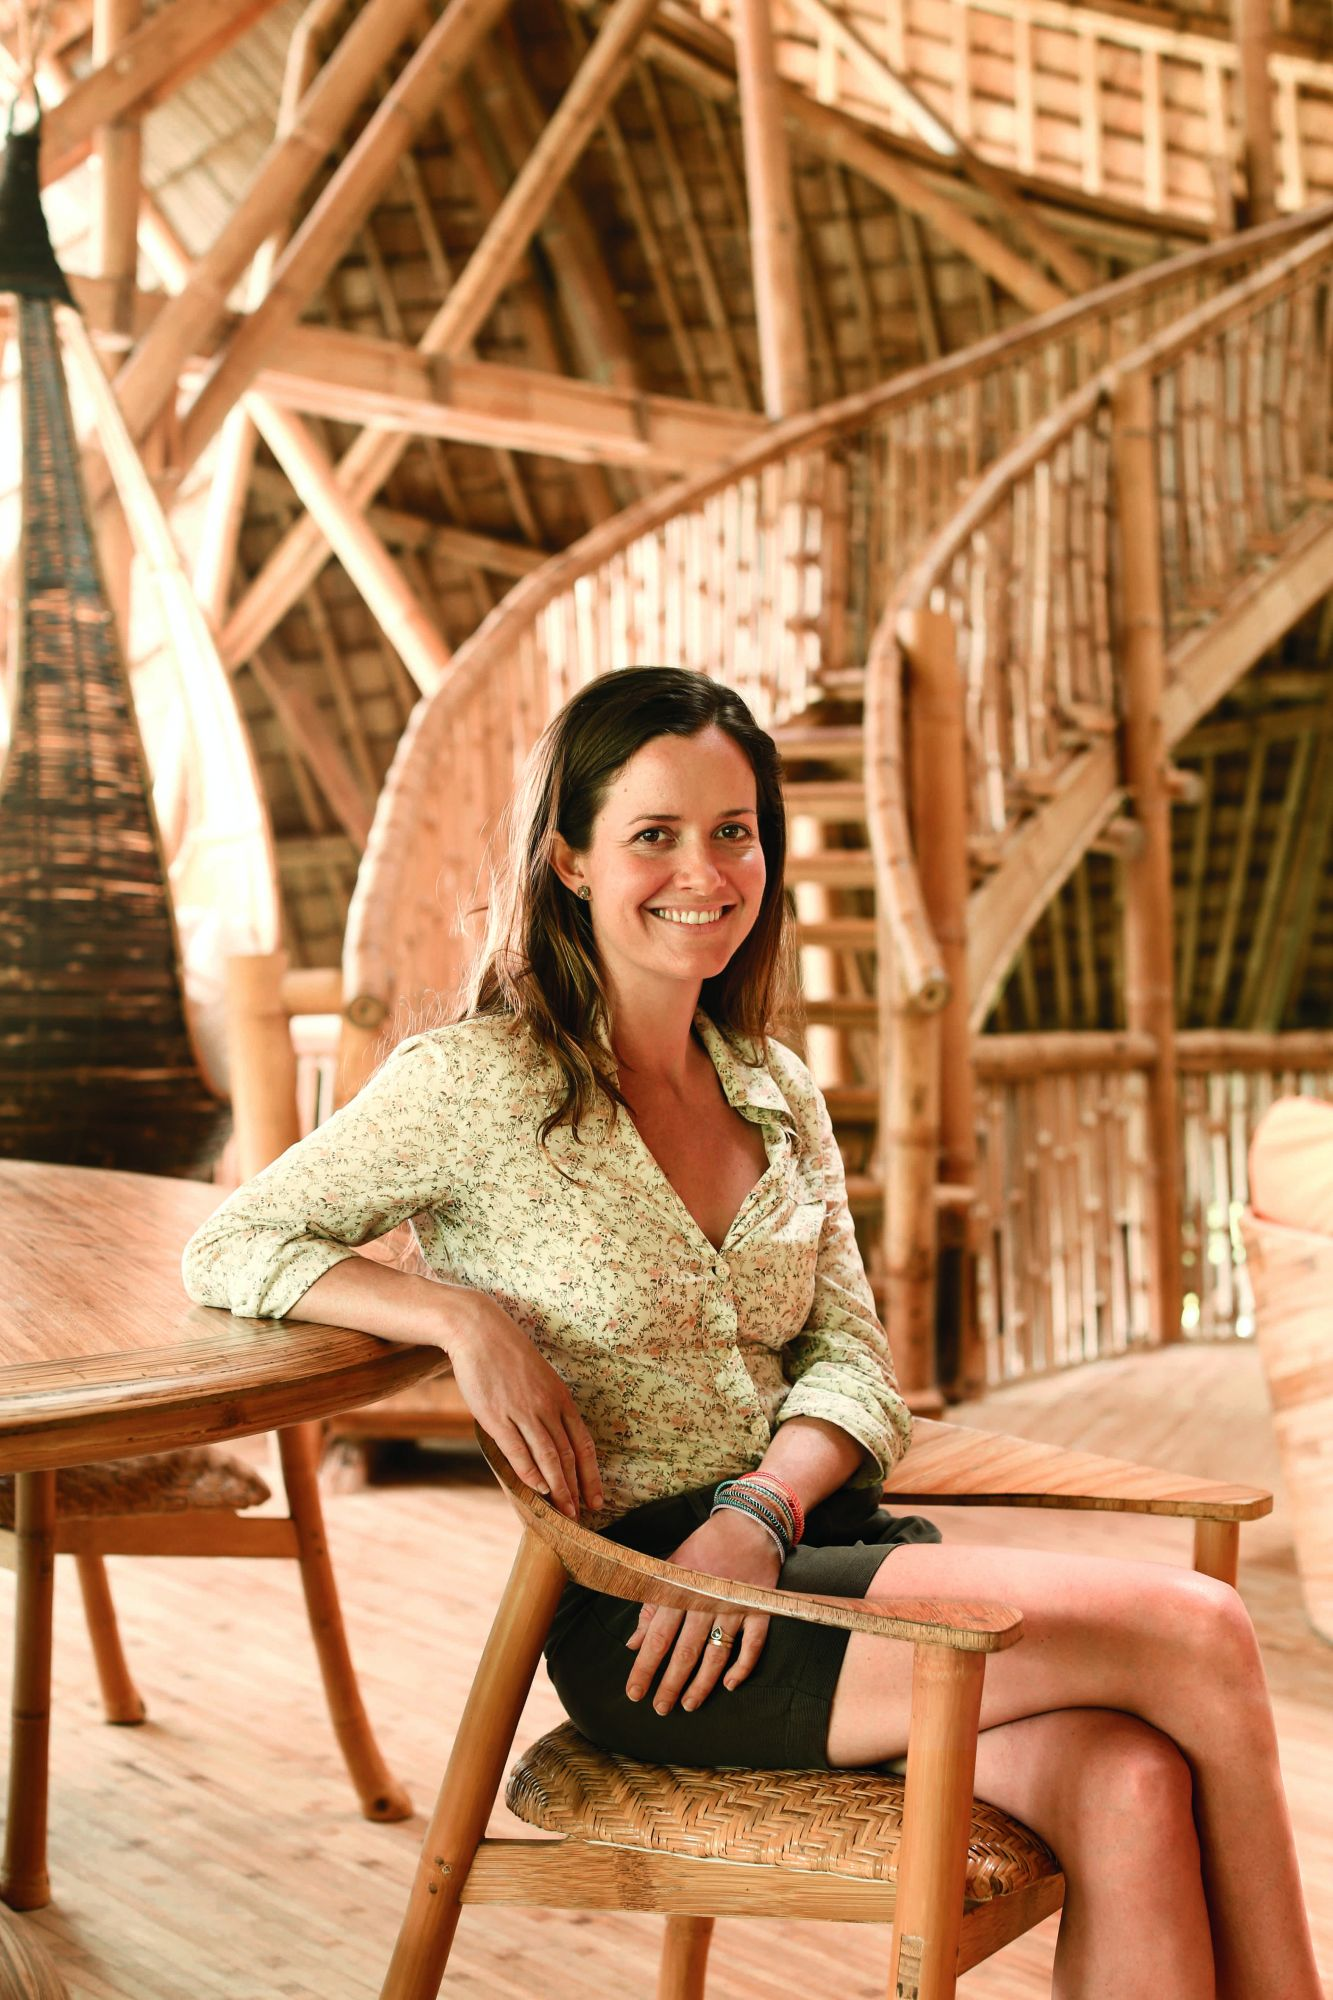 Designer Elora Hardy Is Disrupting The Way We Think About Sustainable Construction